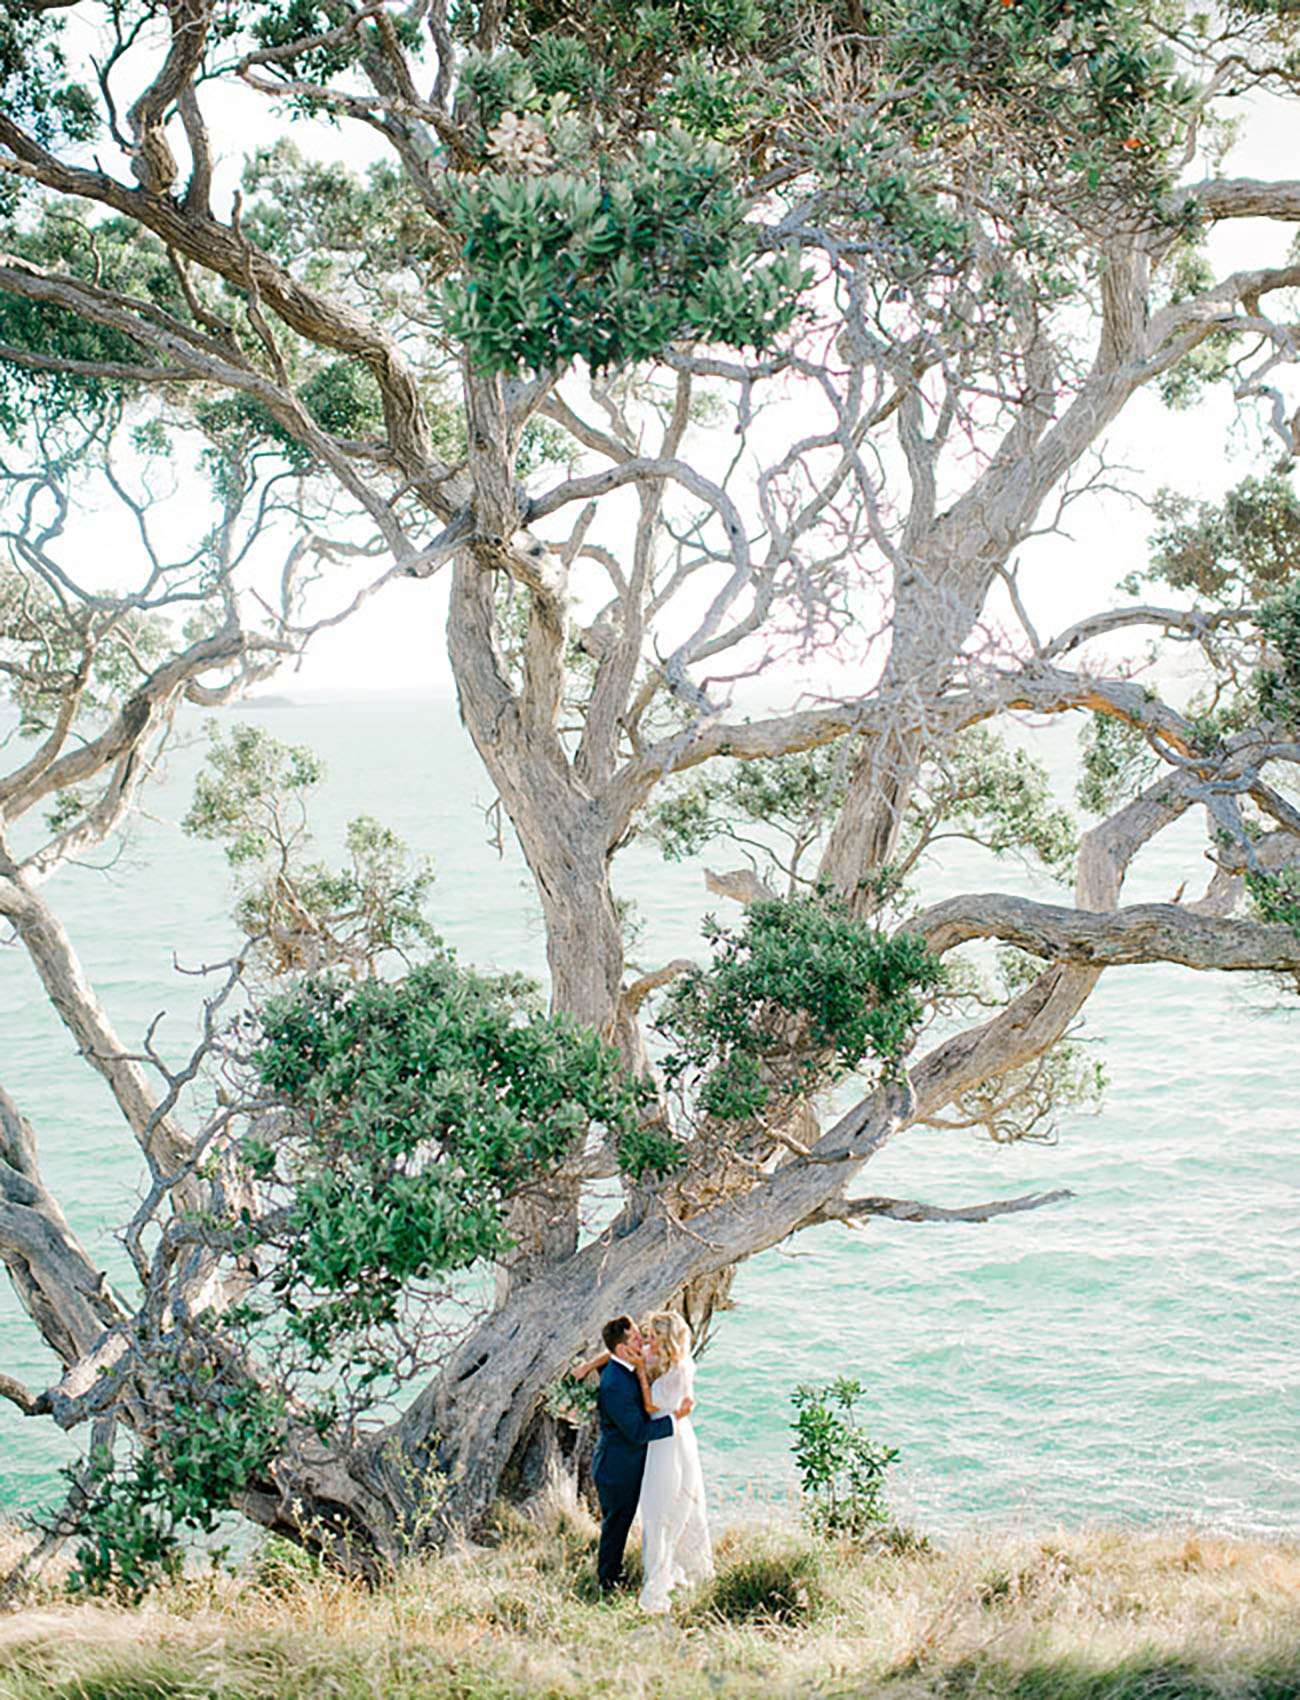 New Zealand elopement under an old tree by the sea